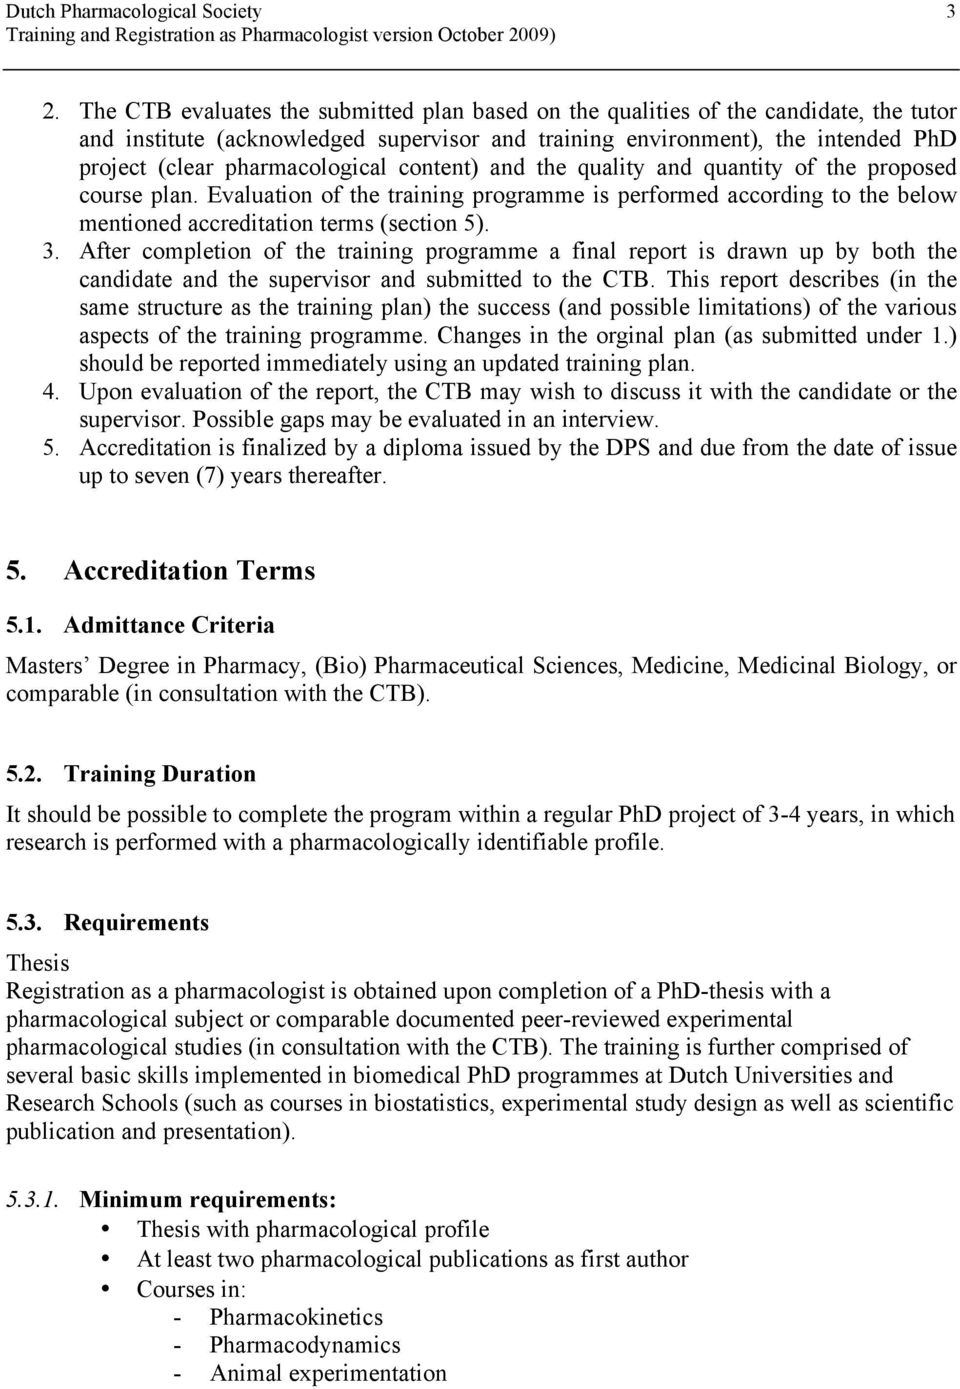 pharmacological content) and the quality and quantity of the proposed course plan. Evaluation of the training programme is performed according to the below mentioned accreditation terms (section 5).